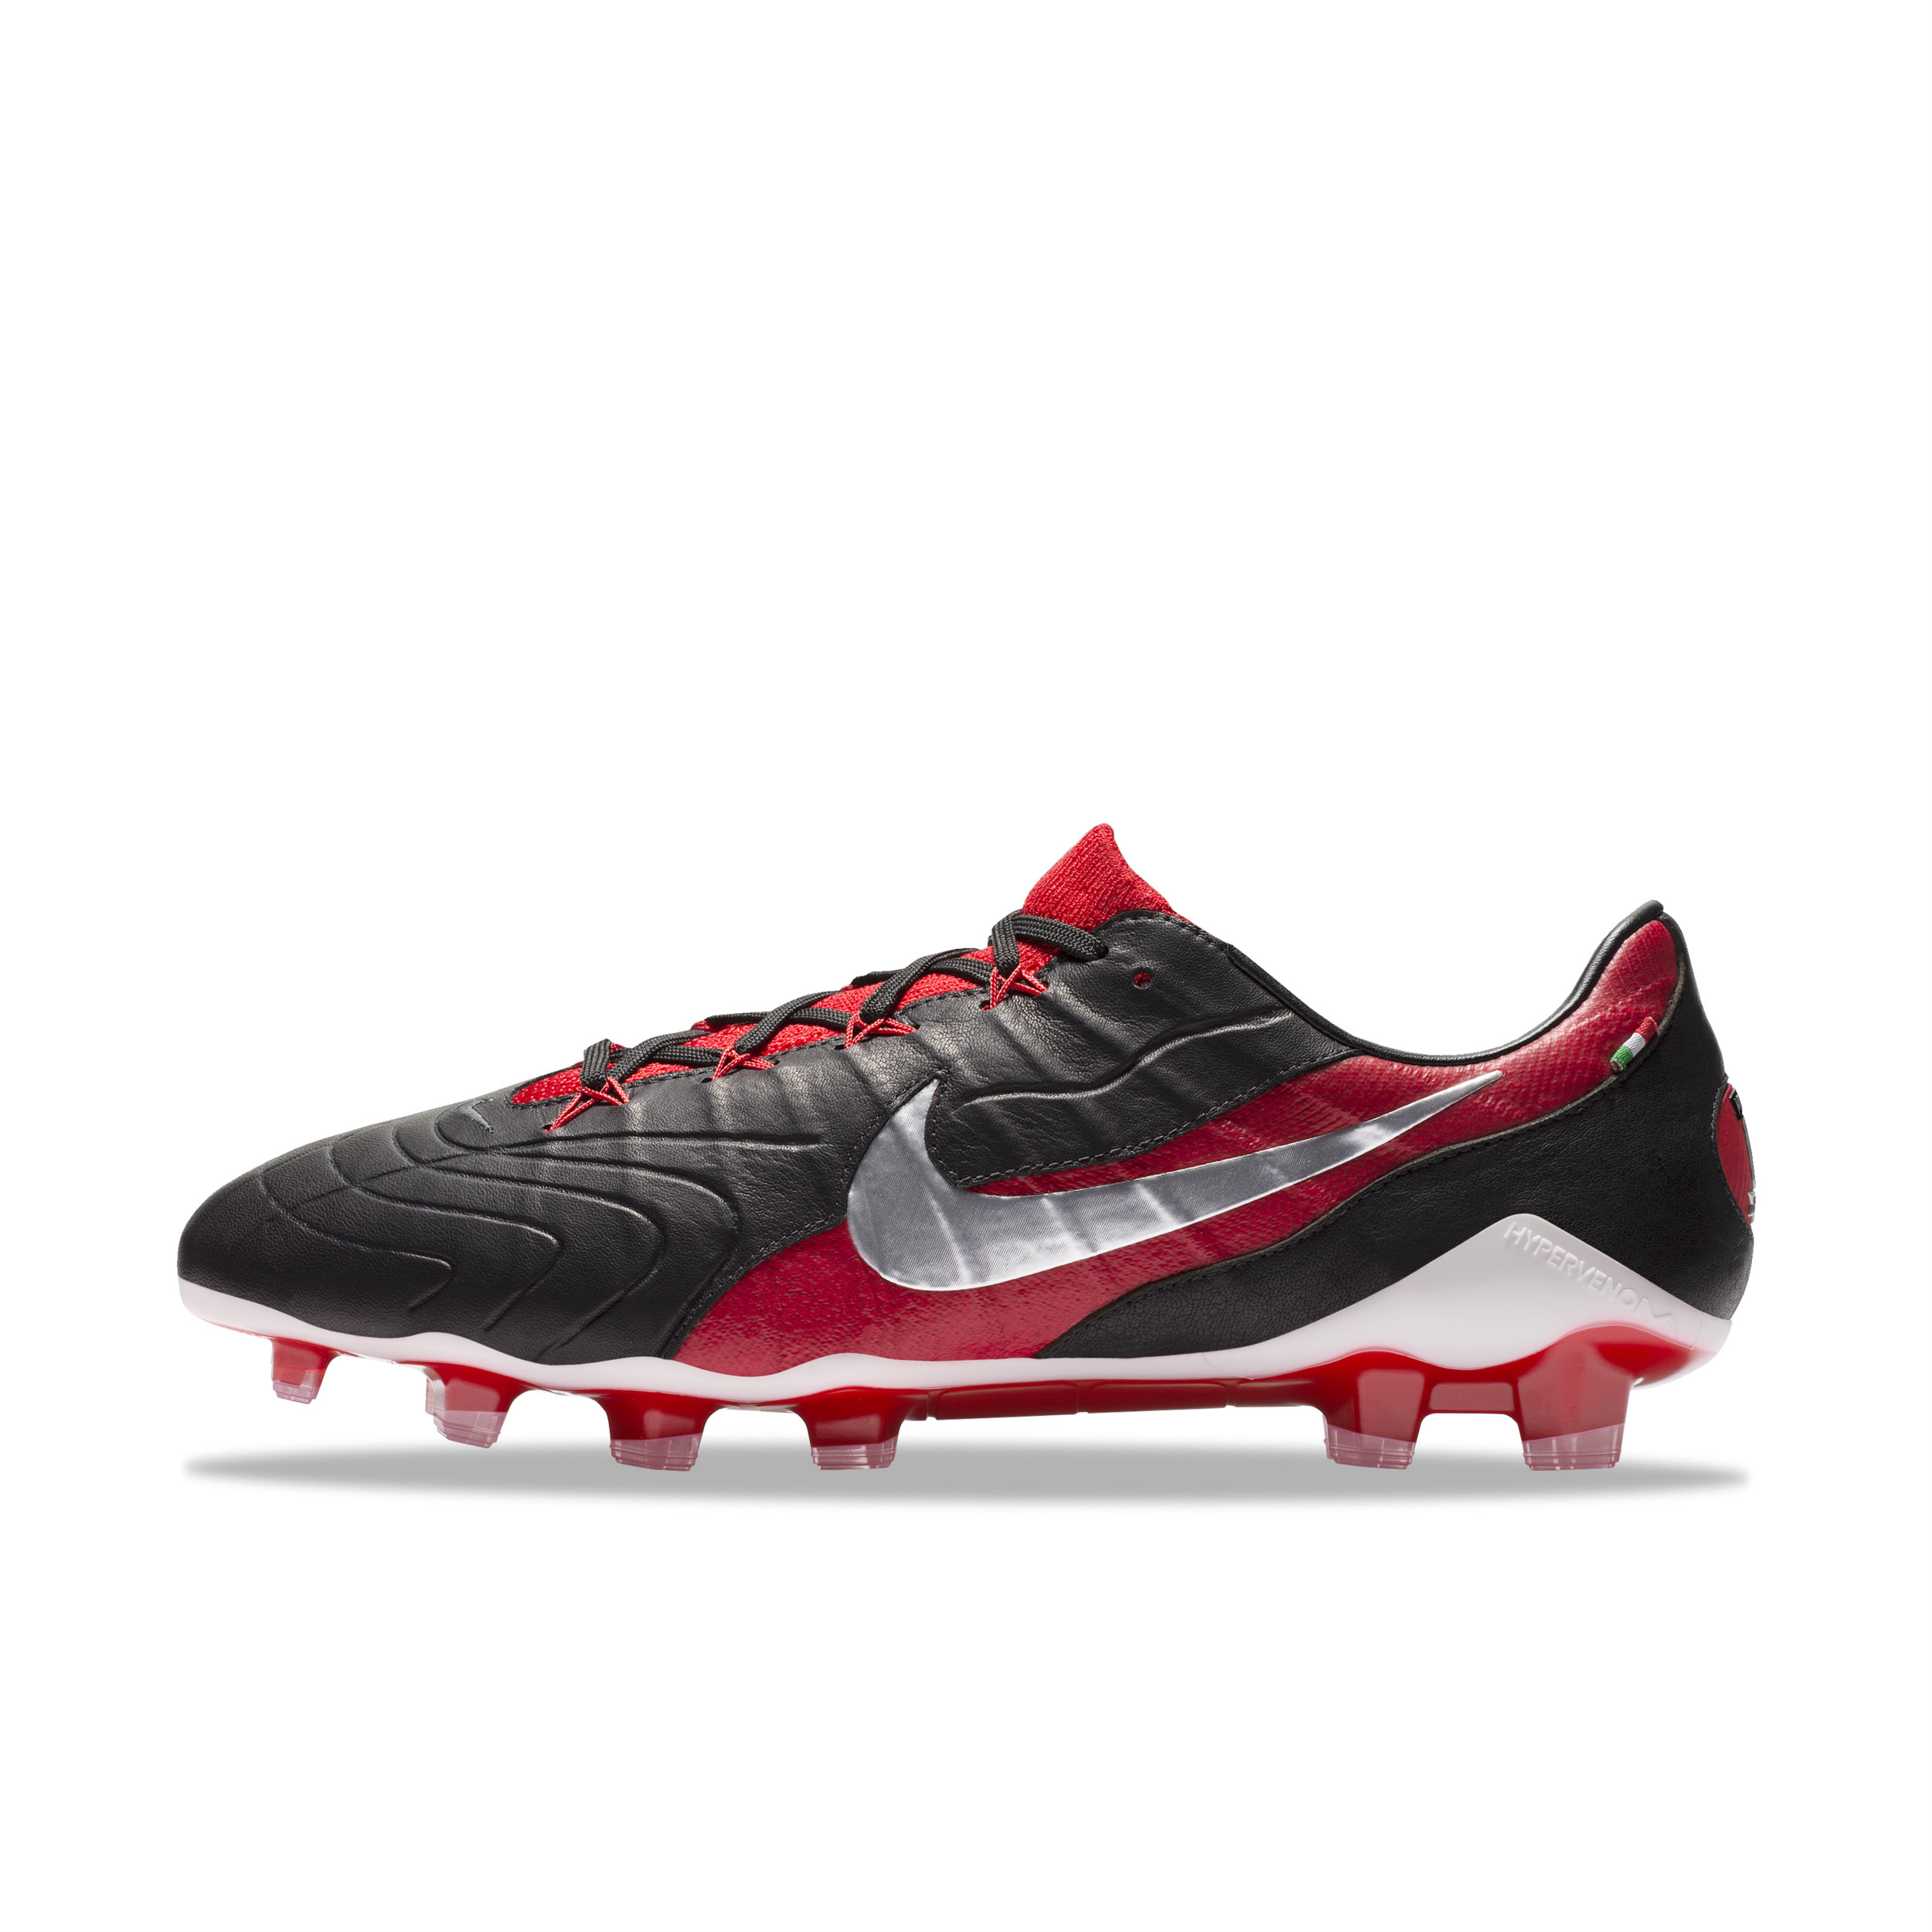 the latest f7409 6a66c Nike Hypervenom Phantom III GX SE iD - Black / University ...